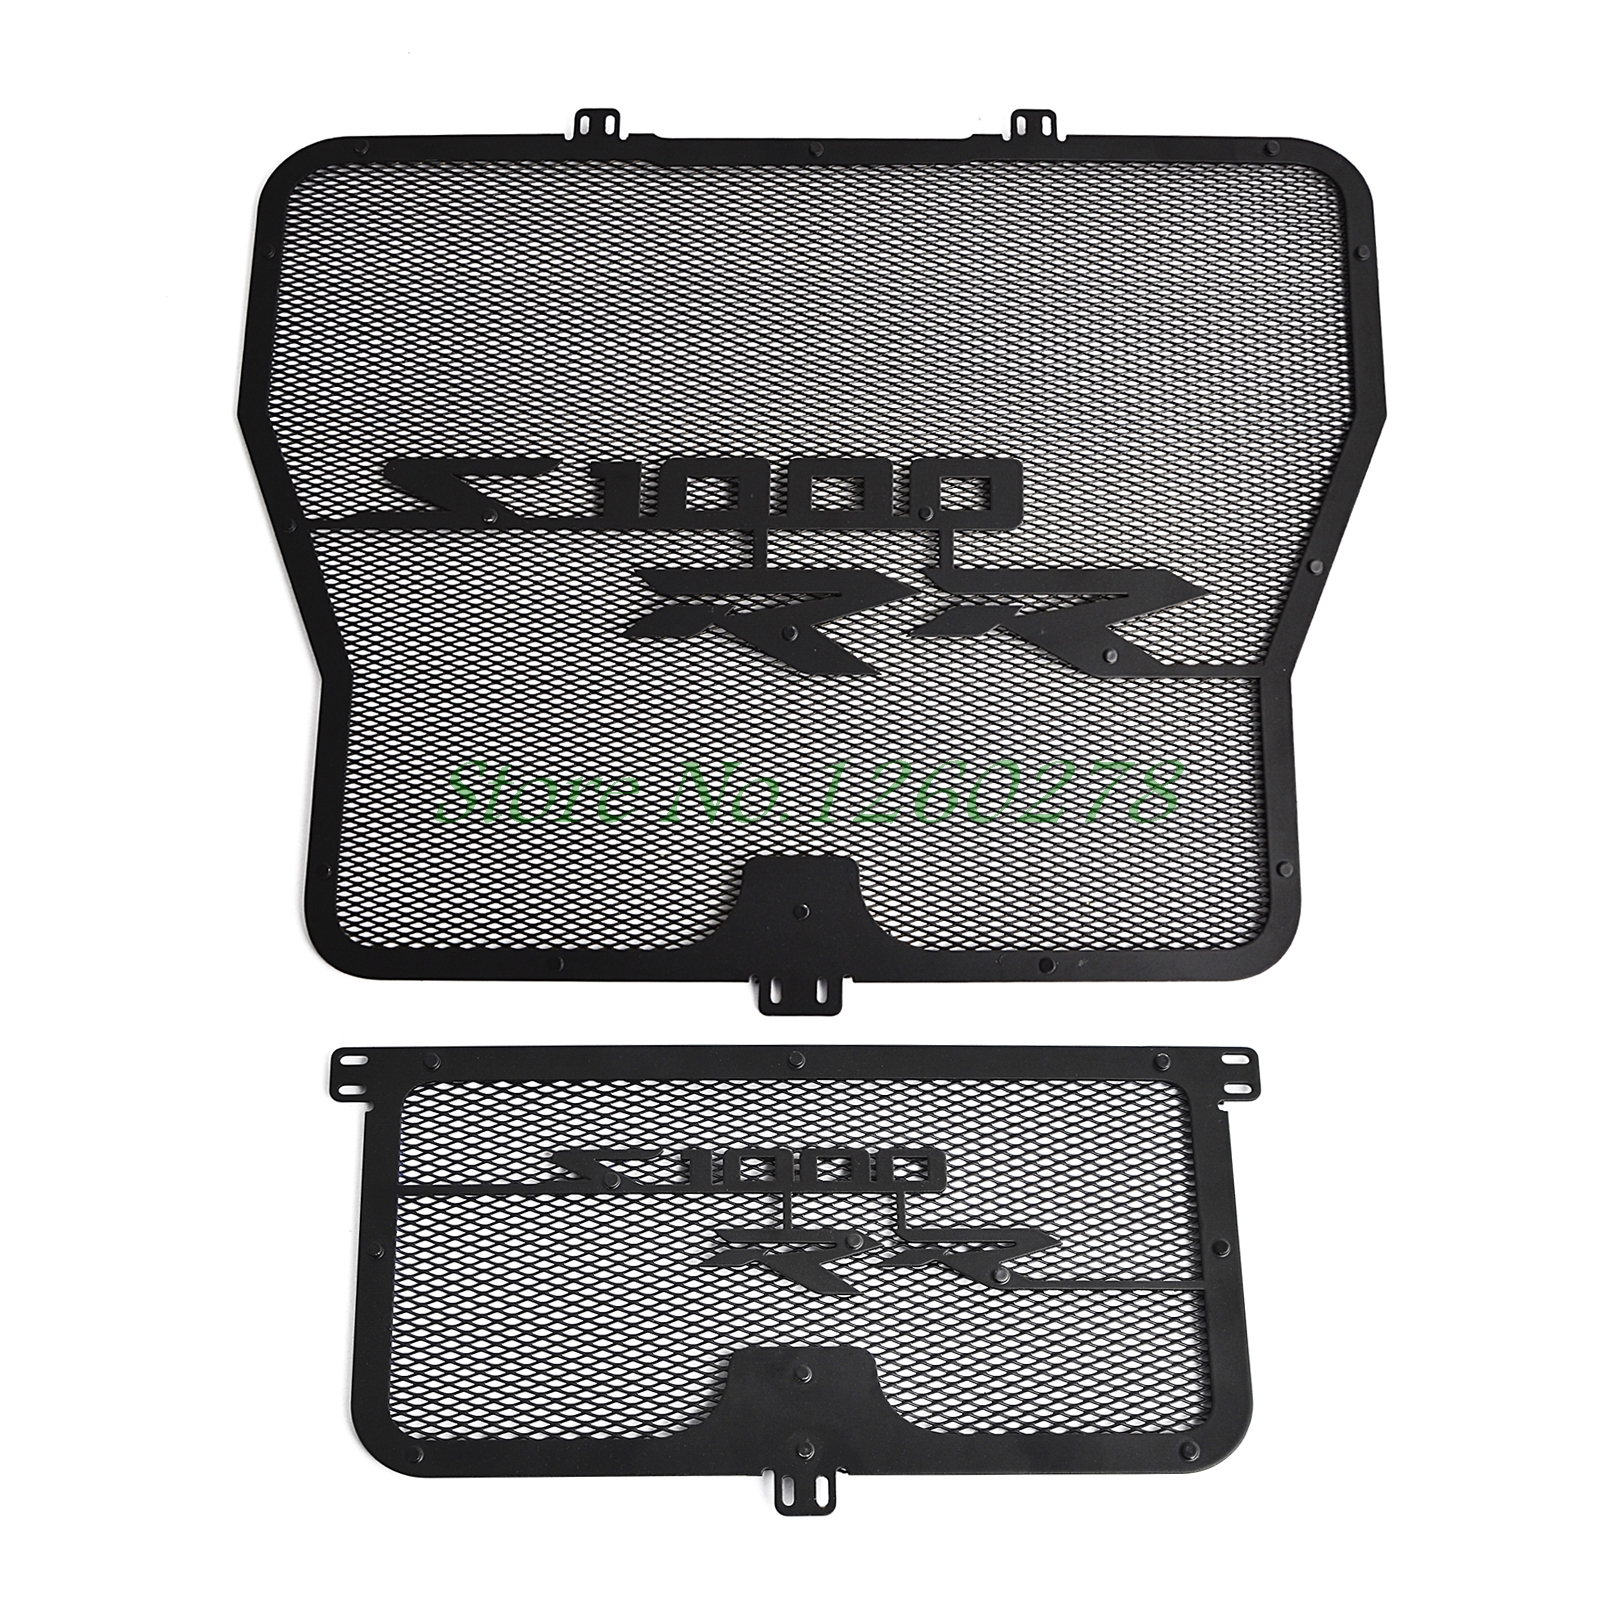 Motorcycle  Radiator Grill &amp; Oil Cooler Cover Protector For  BMW S1000R 2014-2017 S1000RR 2010-2017 HP4 S1000XR<br>